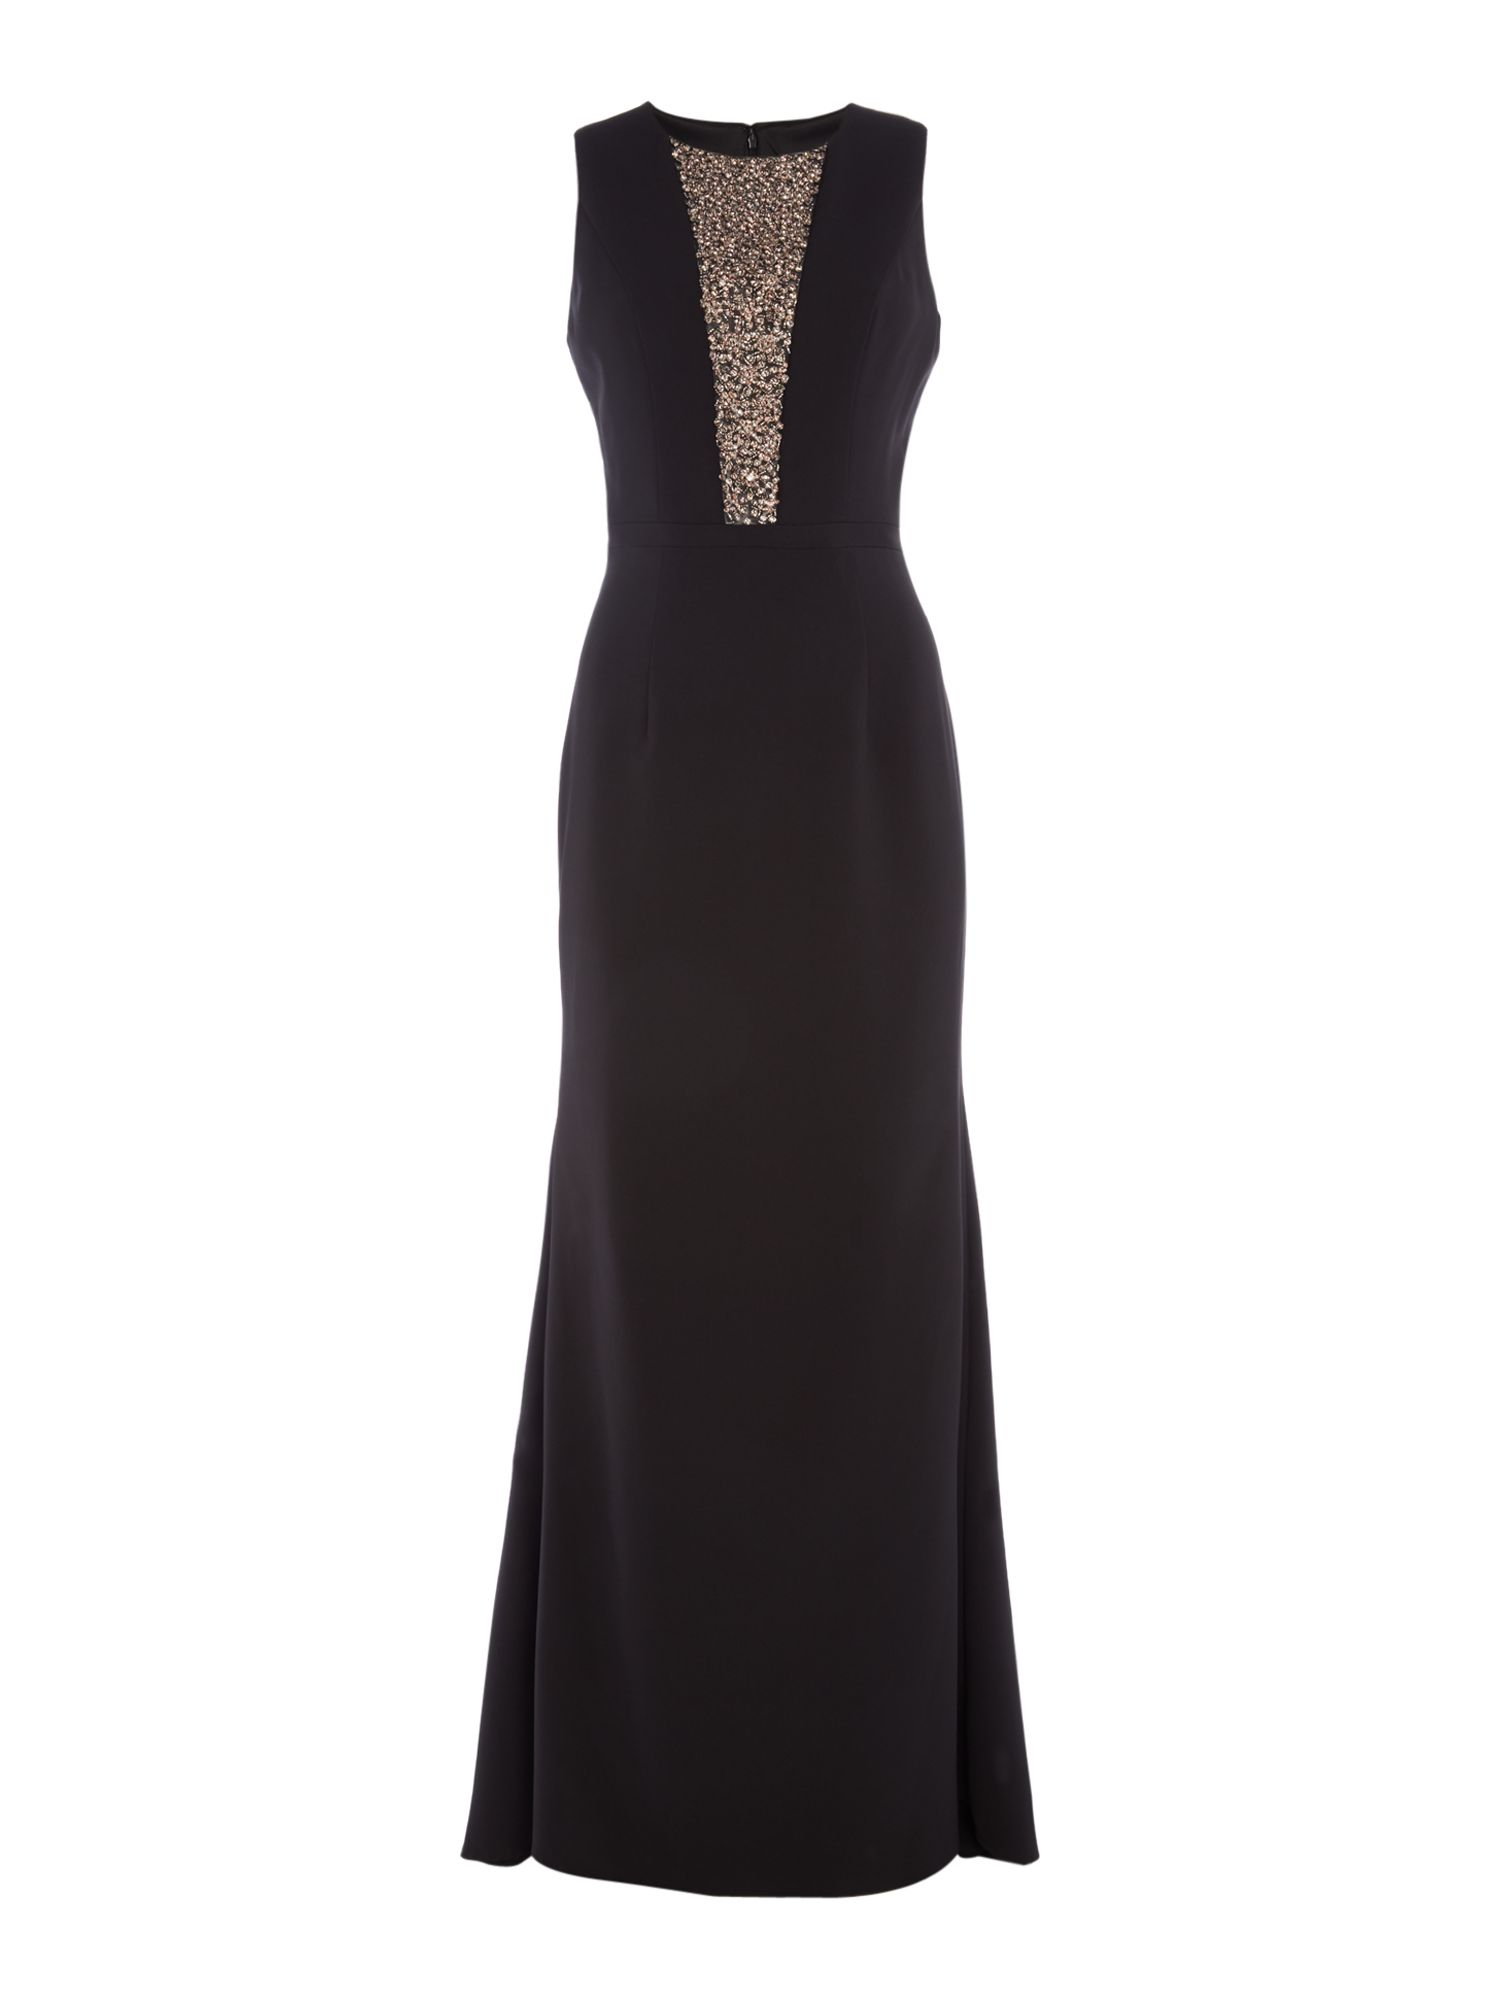 JS Collections Sleeveless dress with embellished panel, Black